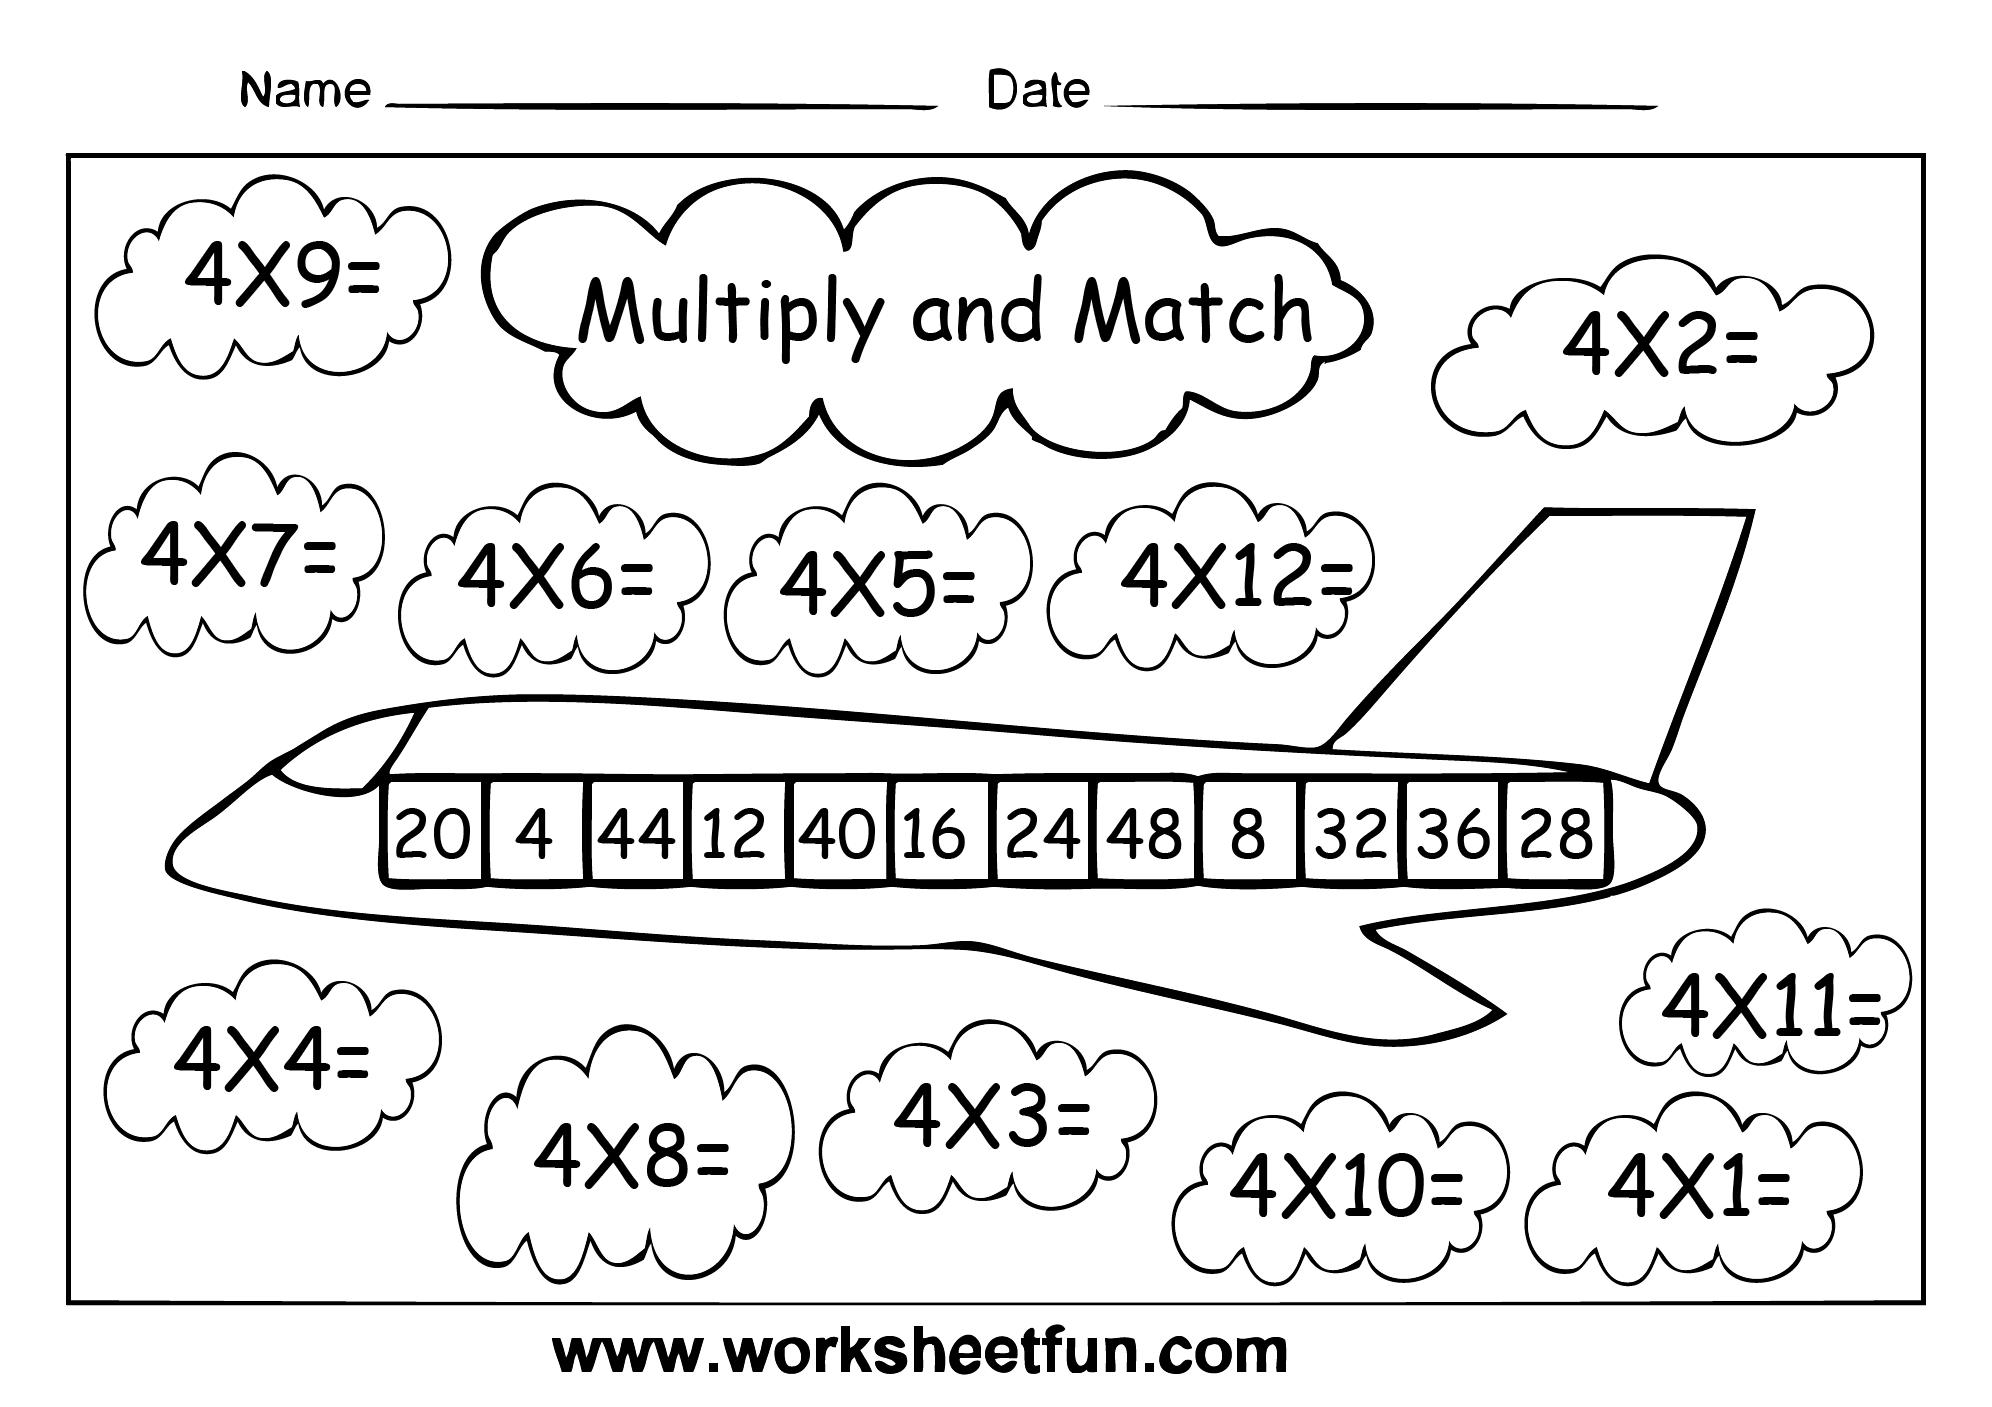 Multiplication Worksheets 4th Grade Printable